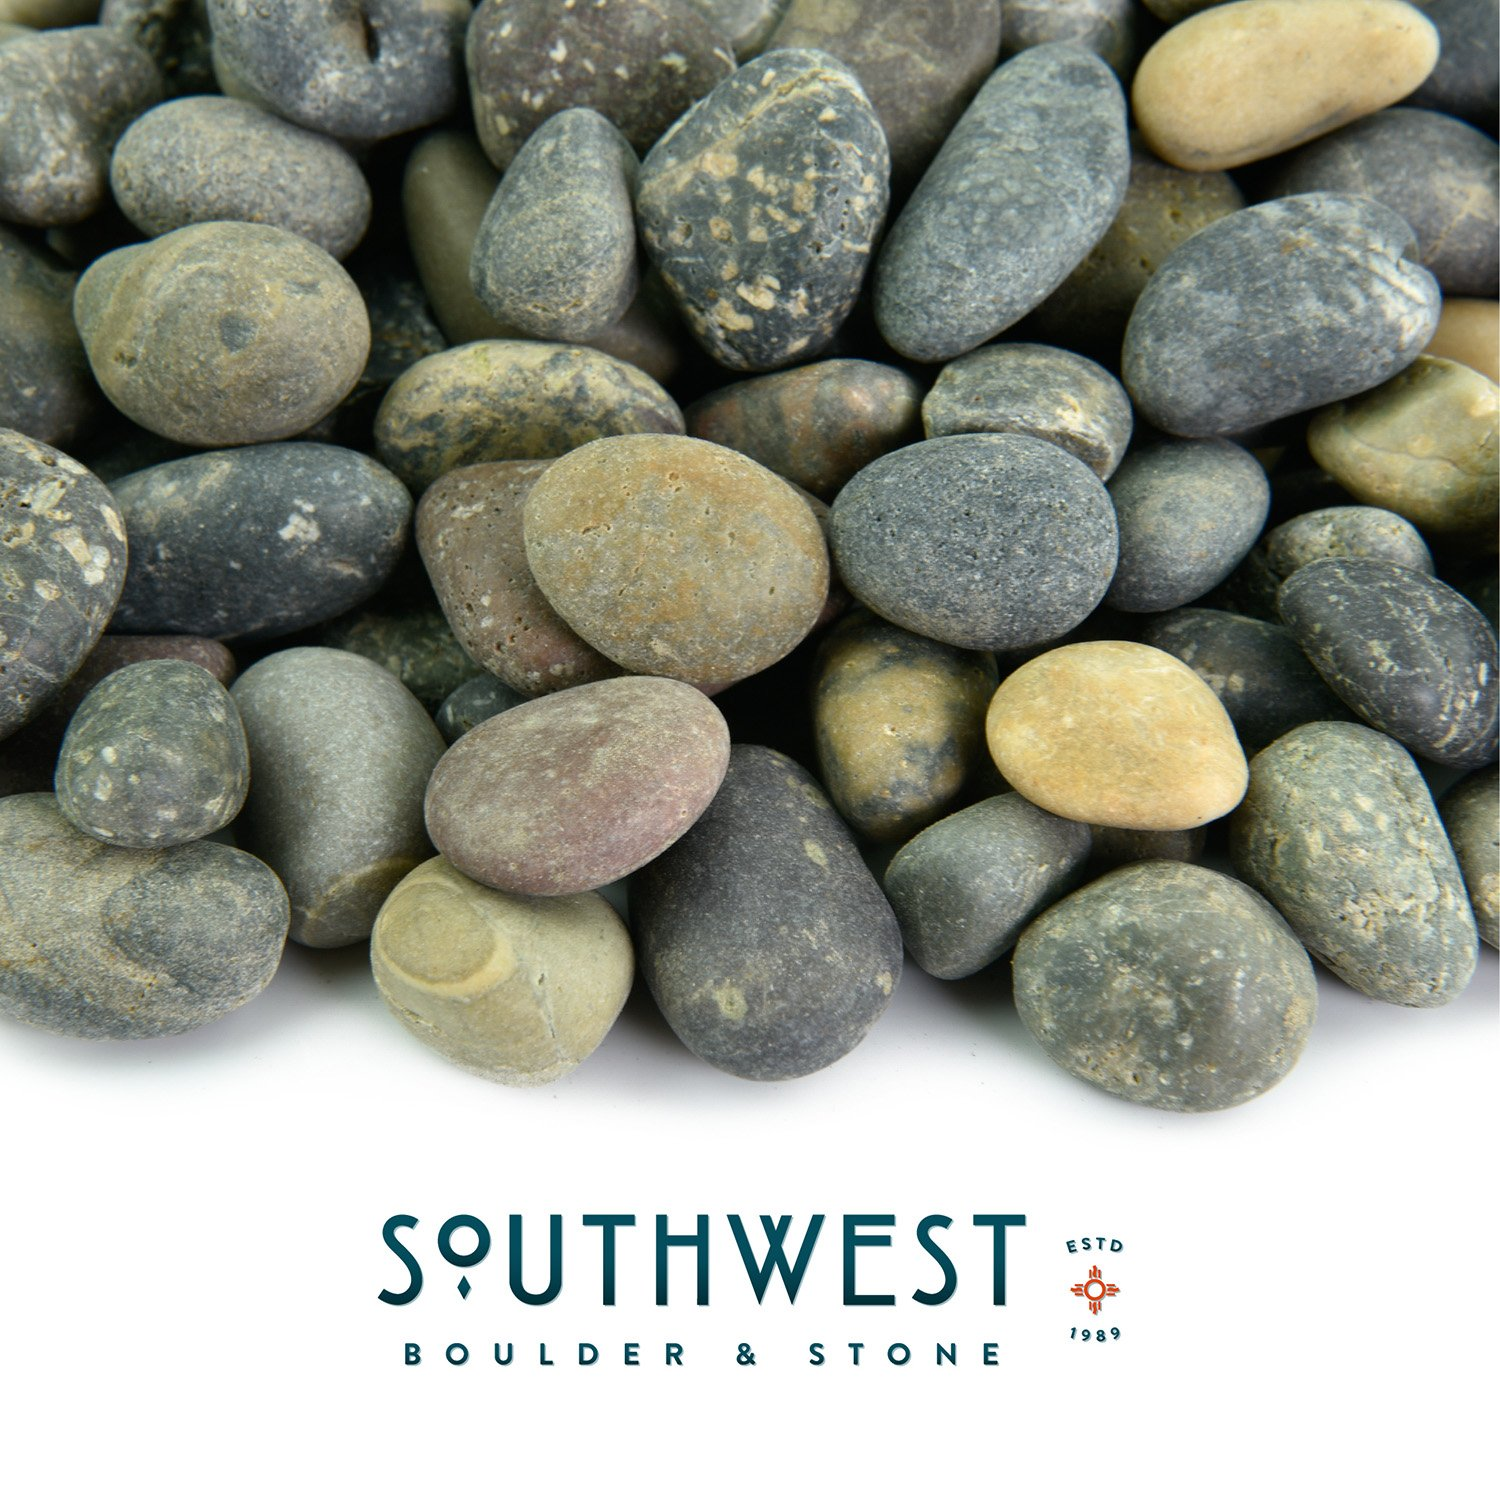 Mexican Beach Pebbles | 2000 Pounds of Smooth Unpolished Stones | Hand-Picked, Premium Pebbles for Garden and Landscape Design | Mixed, 3/8 Inch - 5/8 Inch